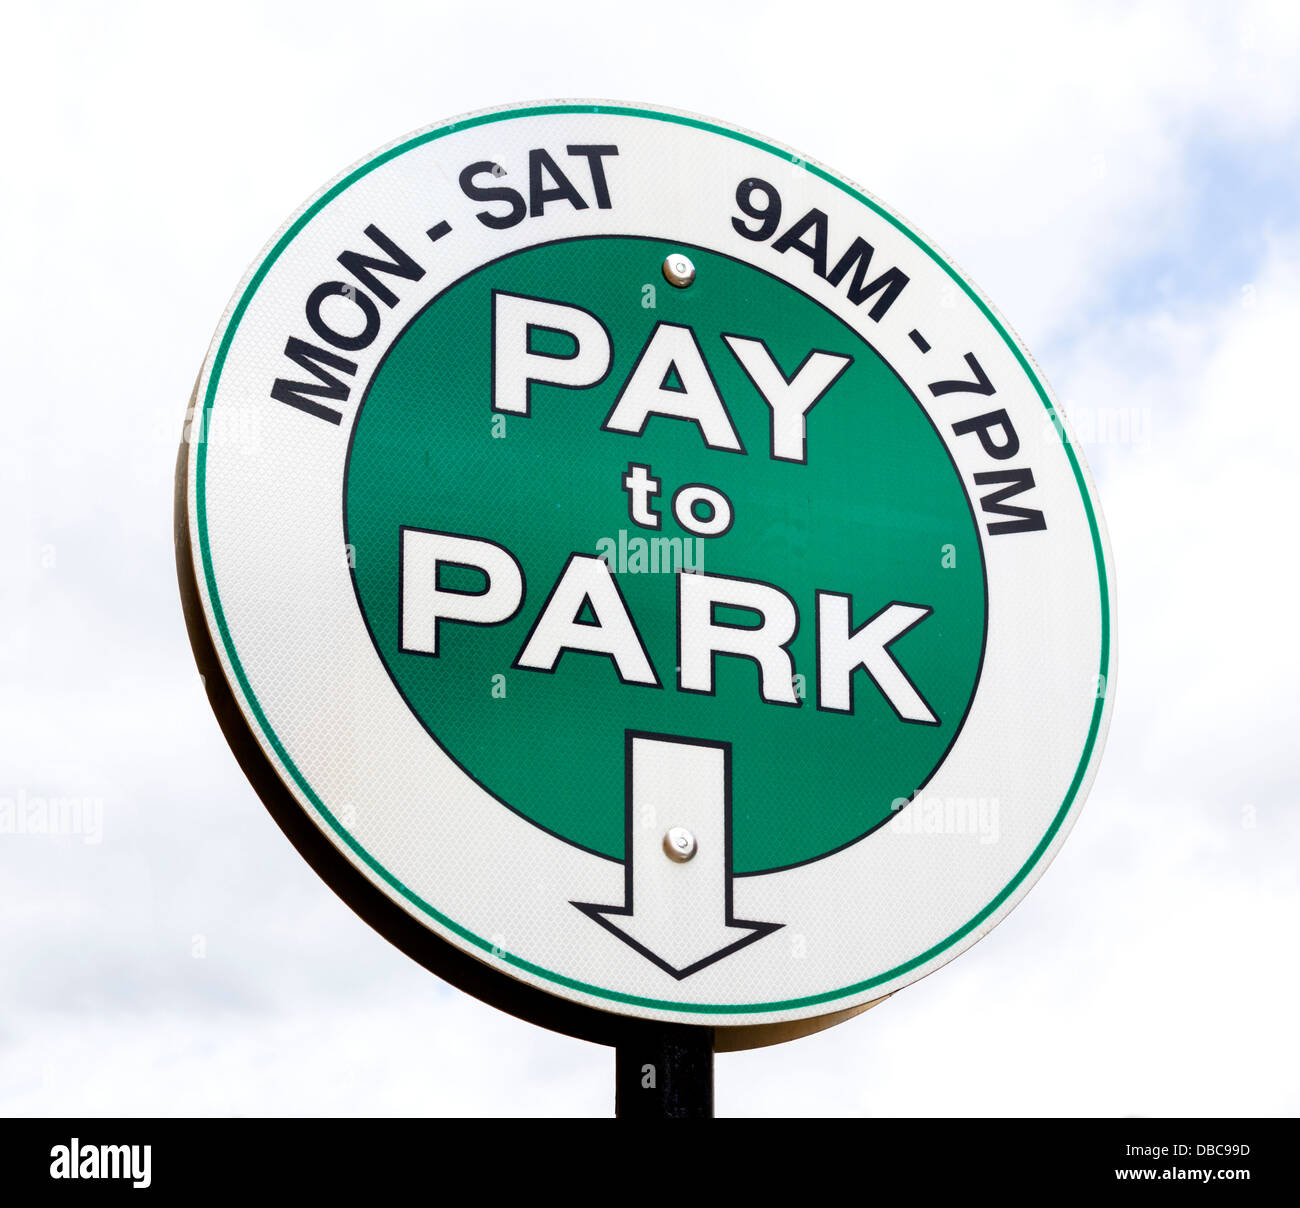 Sign for Pay Parking in downtown Boulder, Colorado, USA - Stock Image